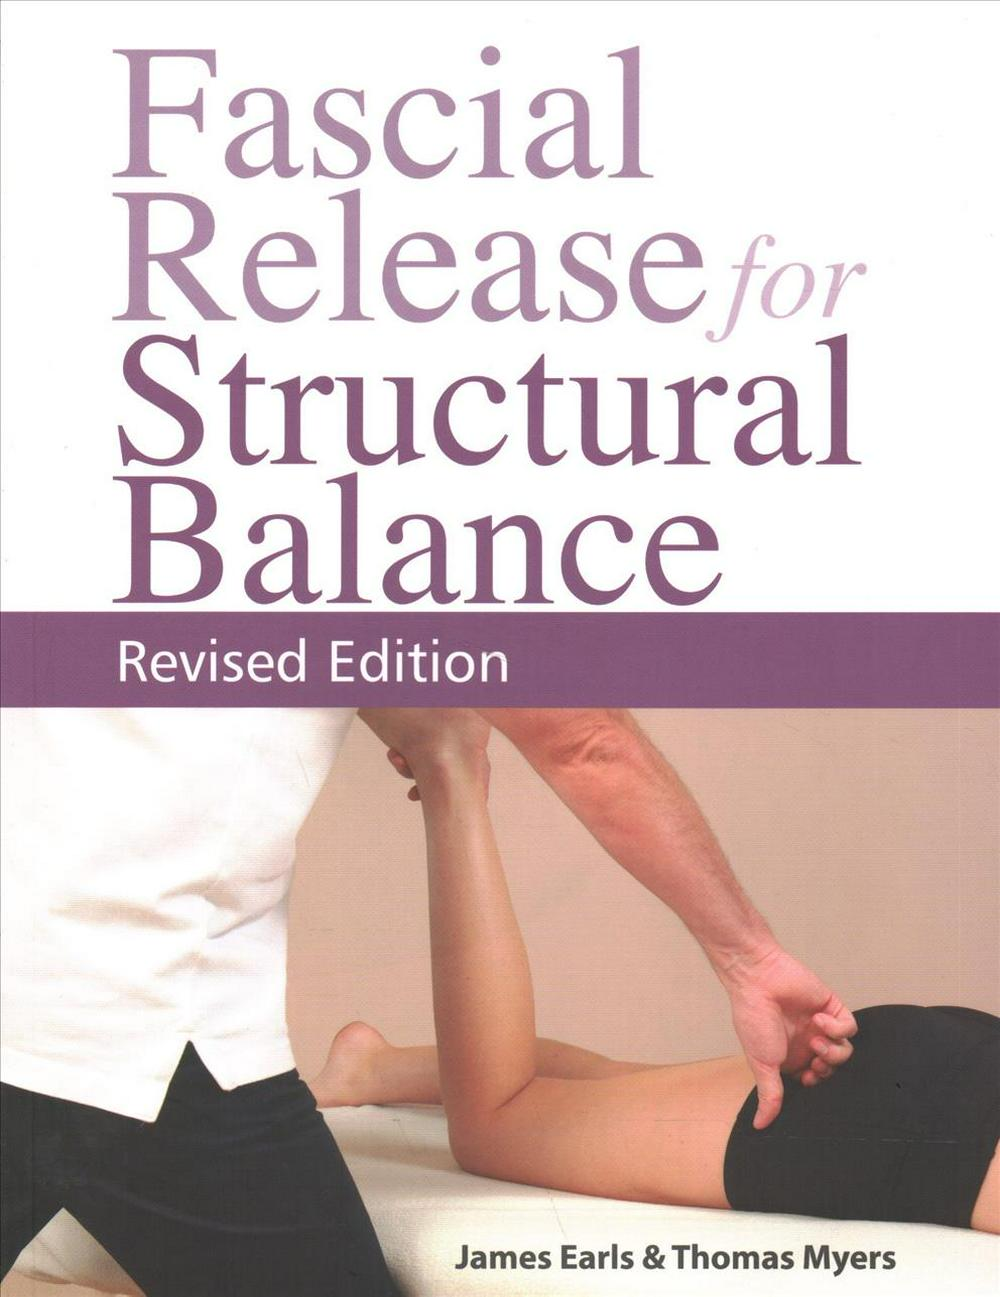 Fascial Release for Structural Balance by James Earls, ISBN: 9781905367764